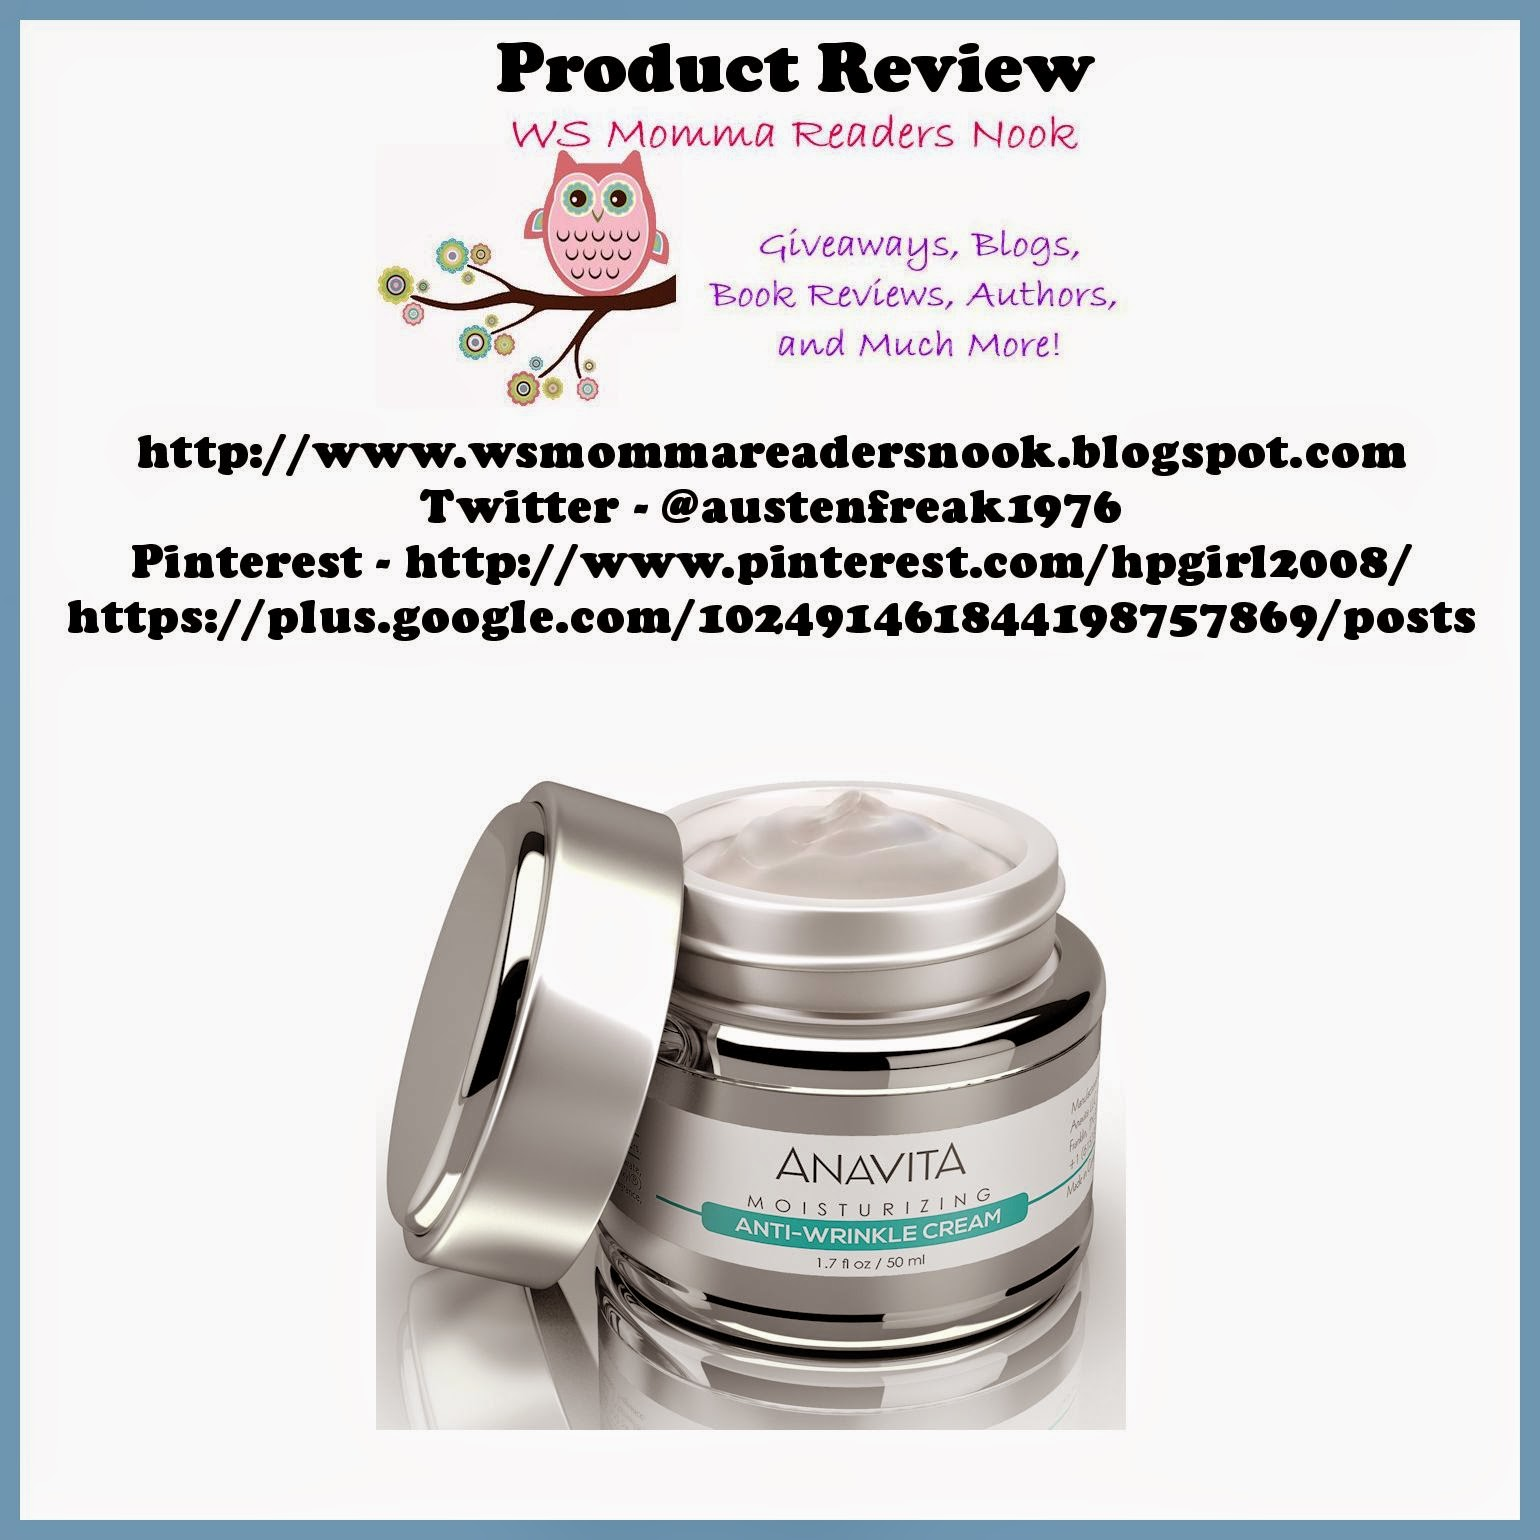 http://www.amazon.com/moisturizing-anti-wrinkle-cream-your/dp/b00ksja7he